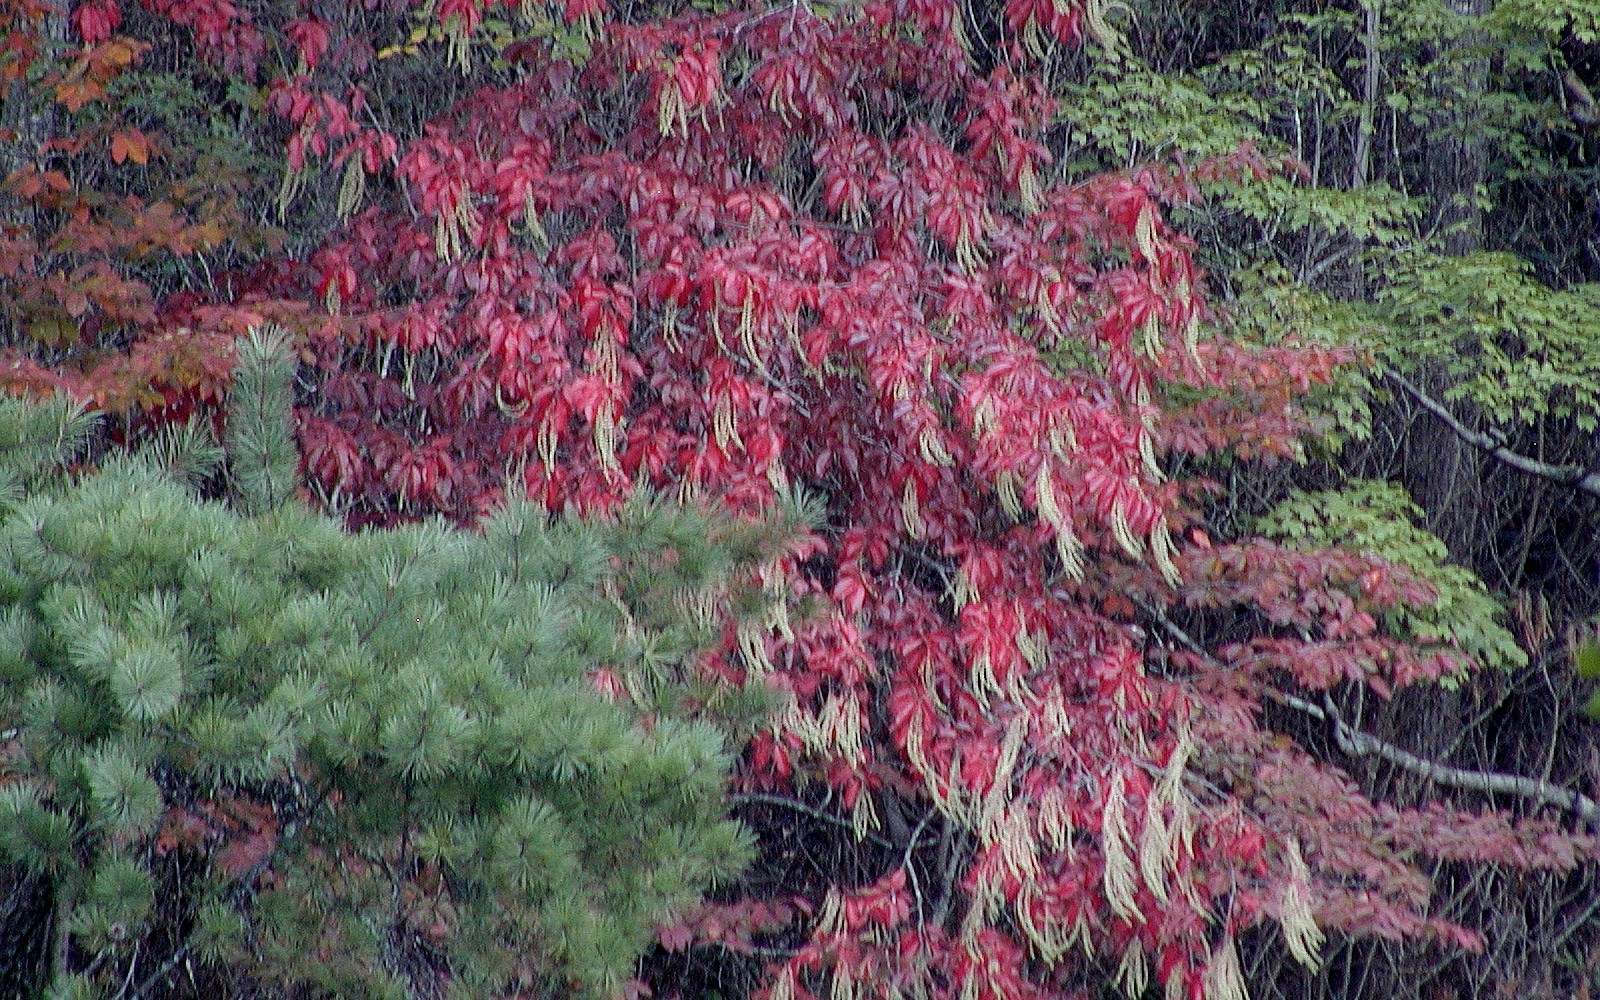 Tree with bright red leaves and clusters of flowers hanging from the branches